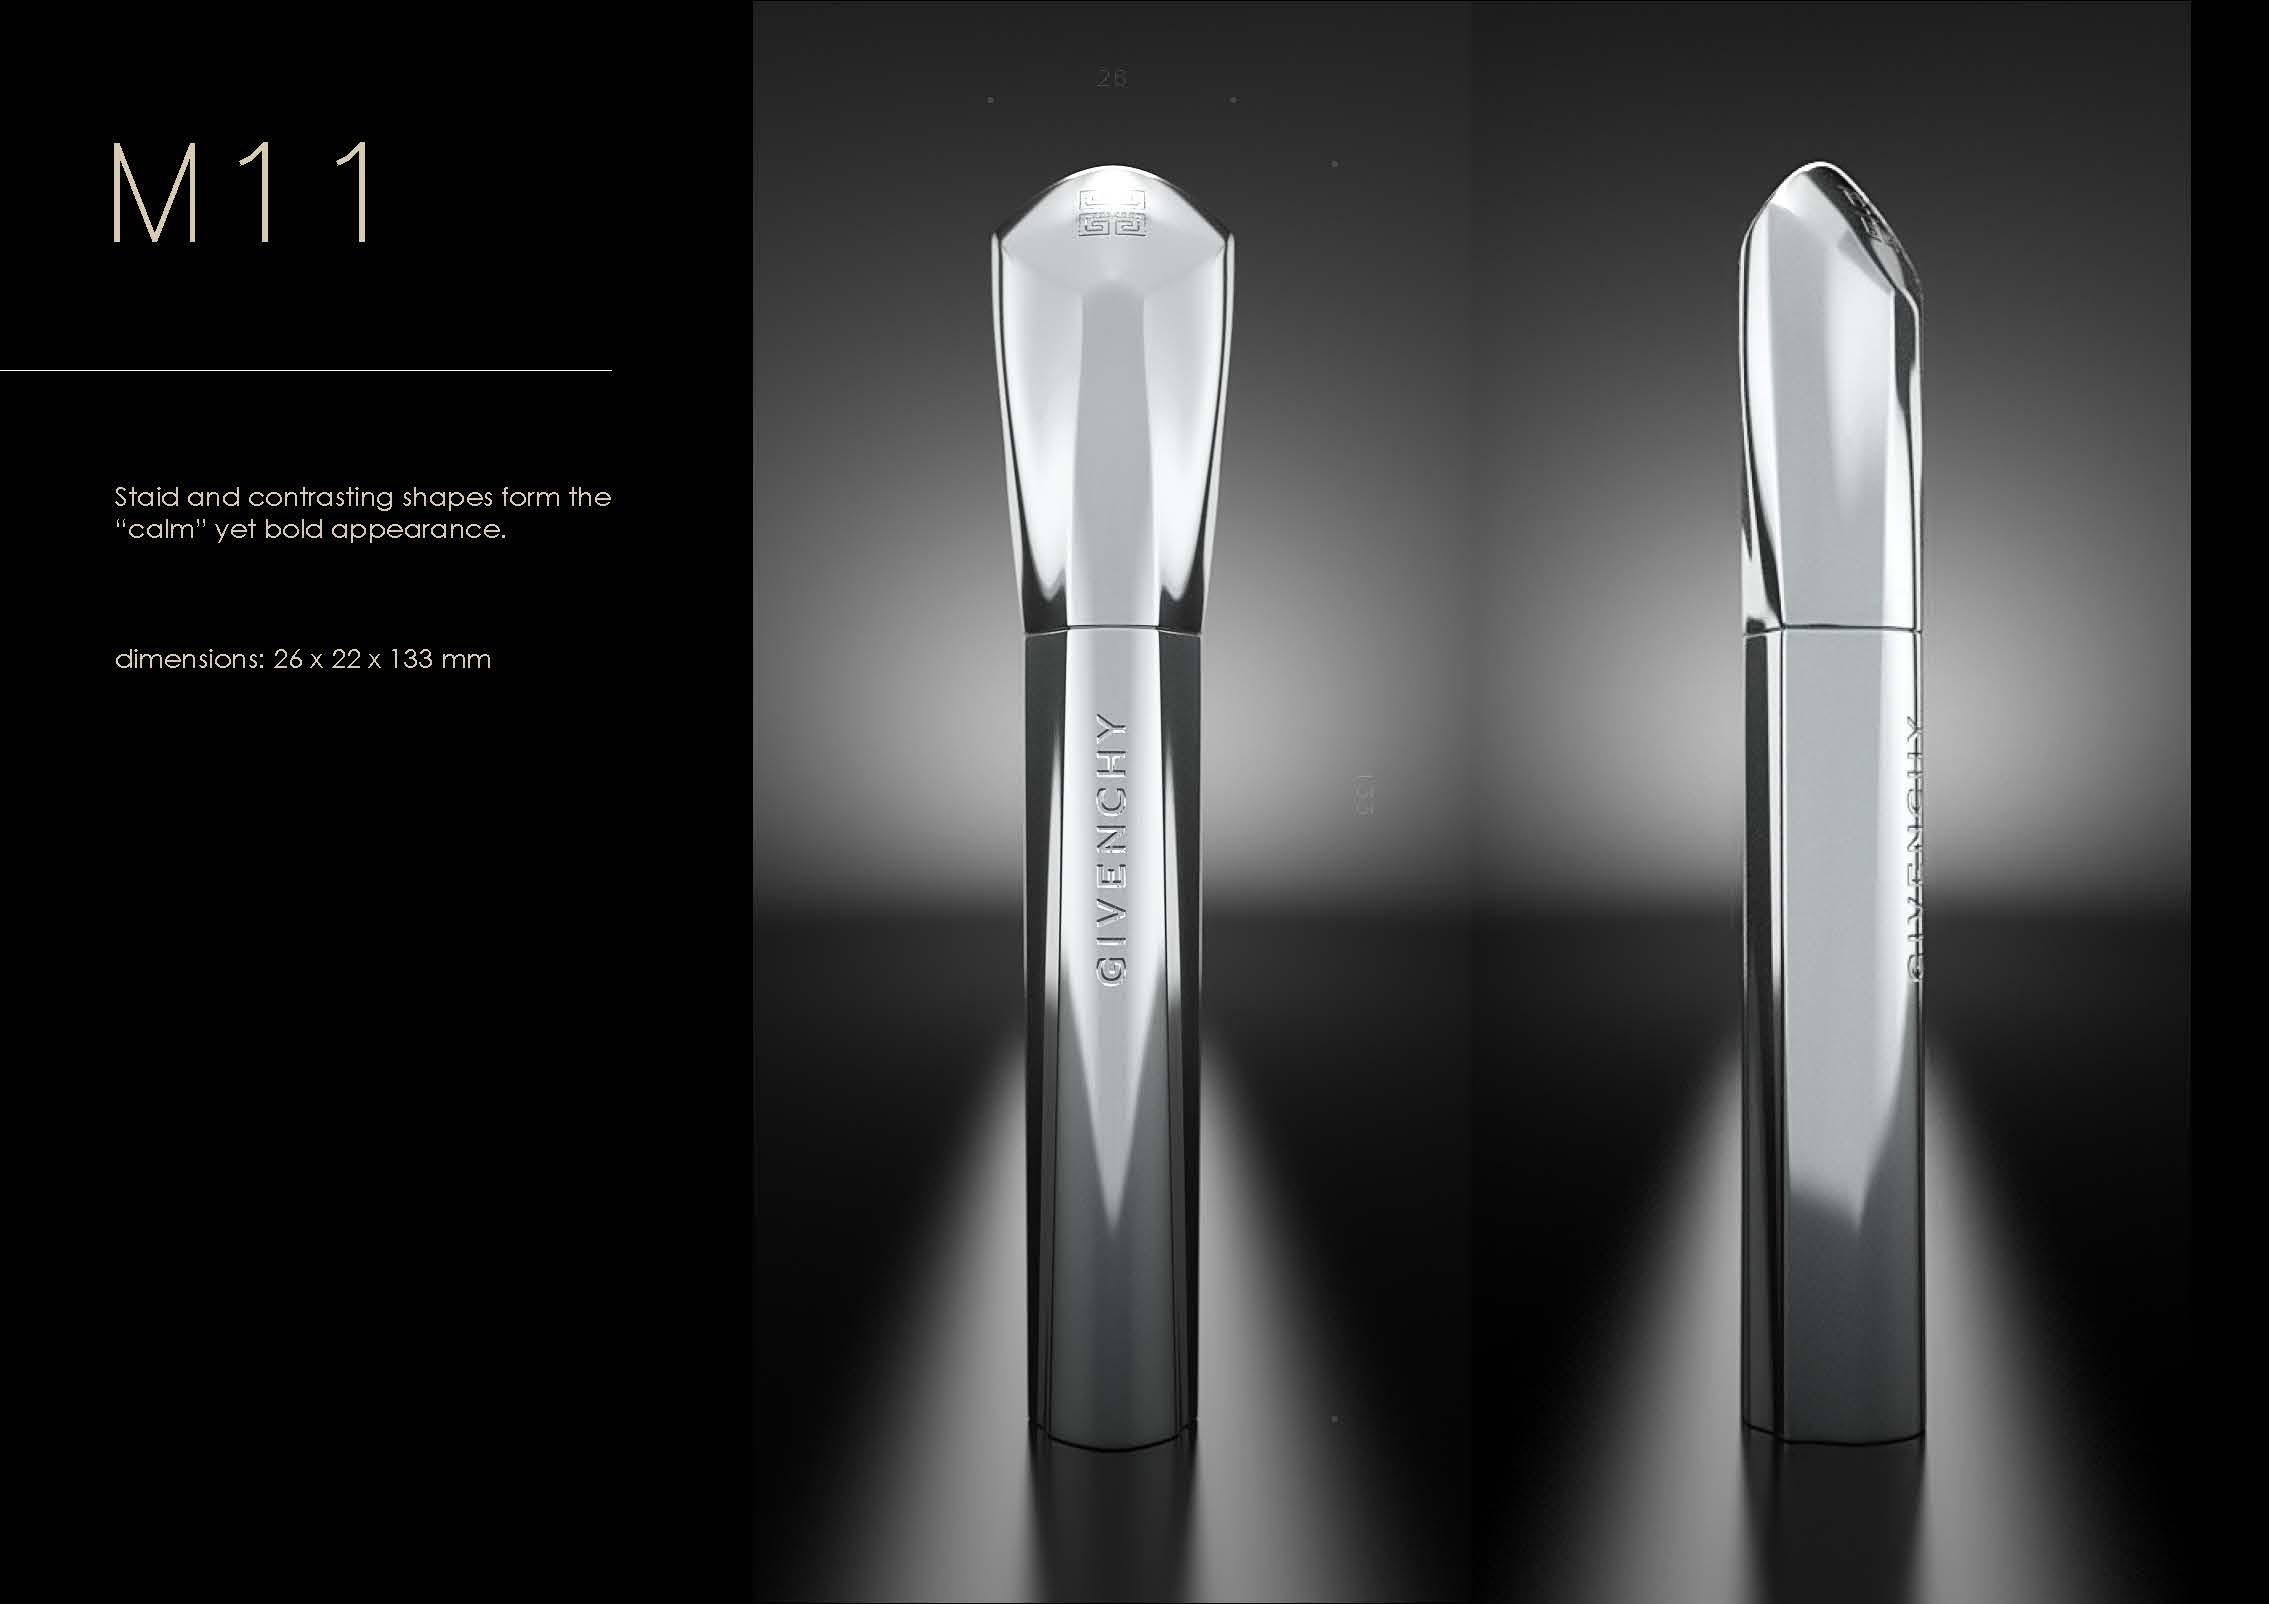 Givenchy mascaras w dimensions, I_Page_25.jpg